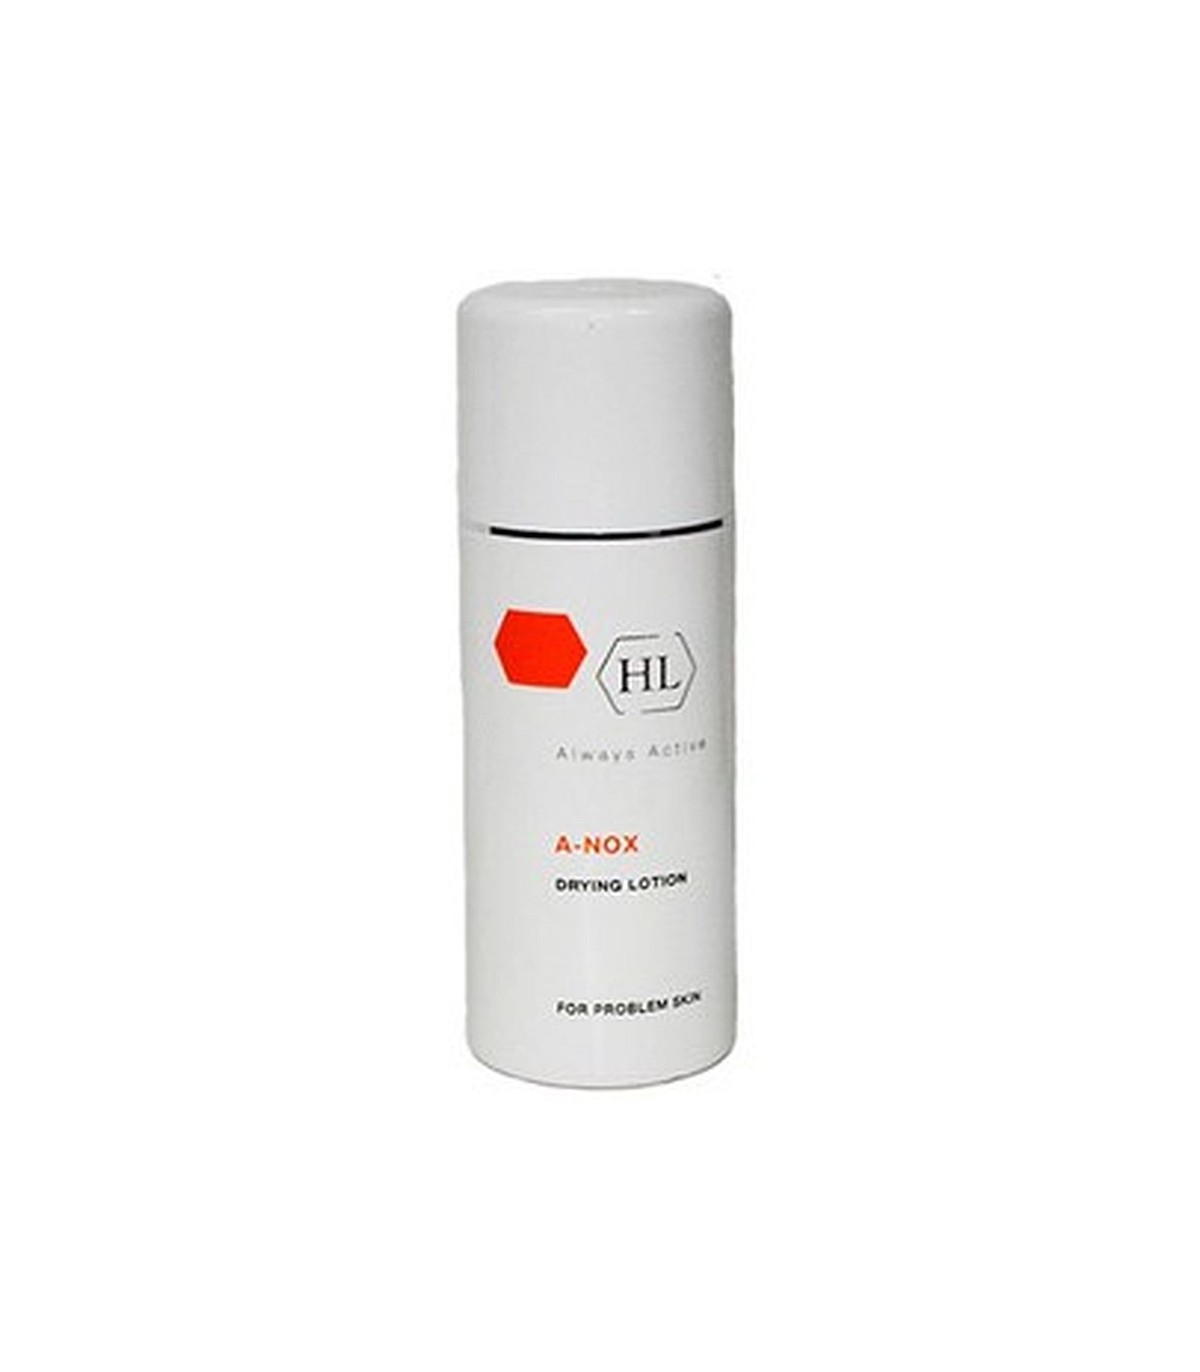 Drying Lotion - Serie A-NOX - Holy Land - 480 ml